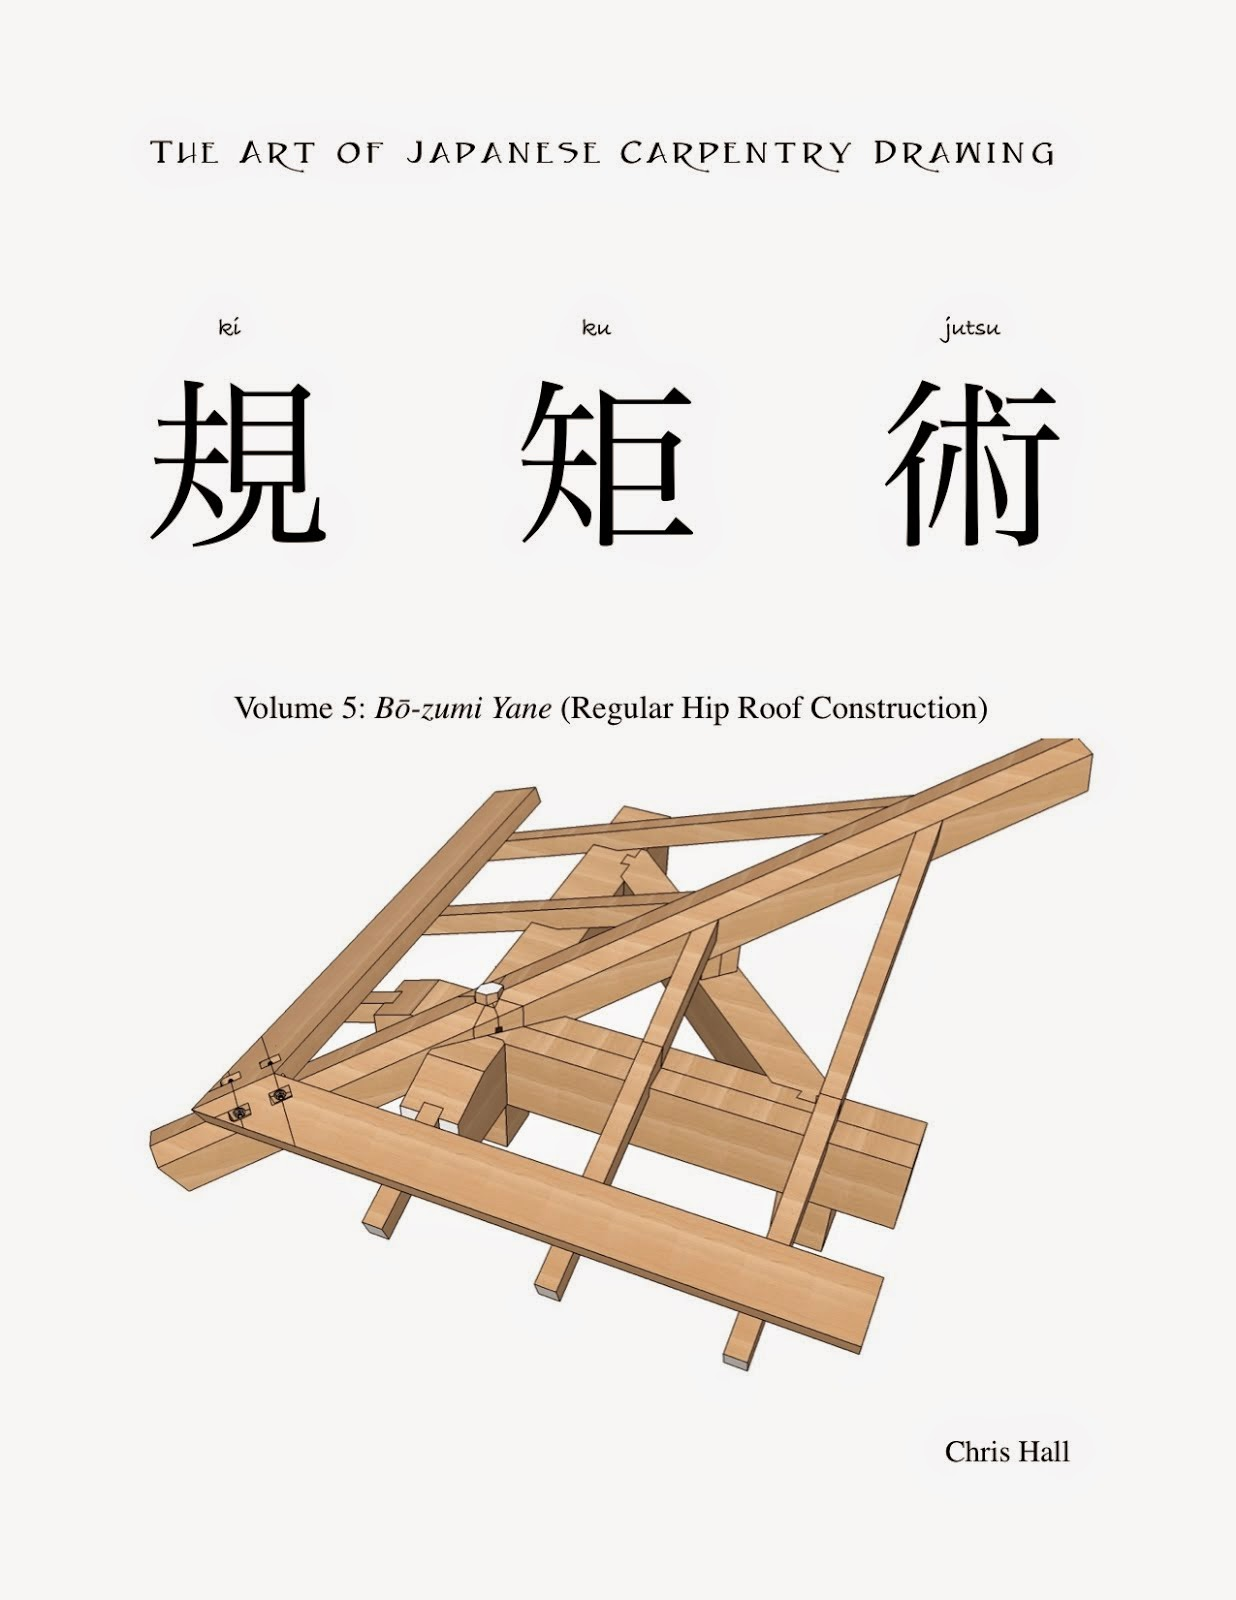 The Art of Japanese Carpentry Drawing, Volume V